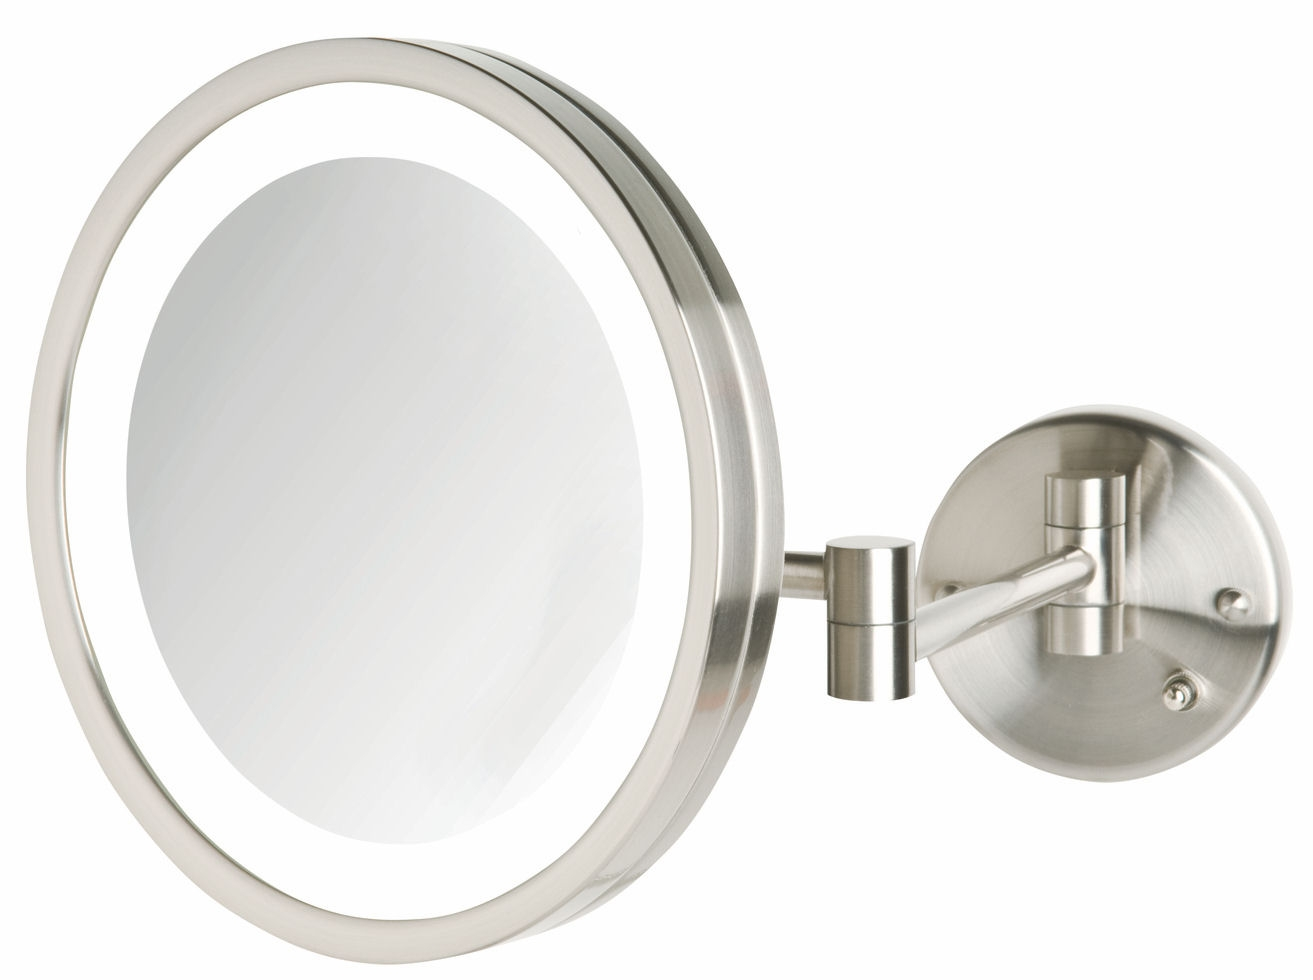 Illuminated Magnifying Mirror Wall Mounted Illuminated Magnifying Mirror Wall Mounted furniture lighted makeup mirror 10x magnifying mirror wall 1313 X 980